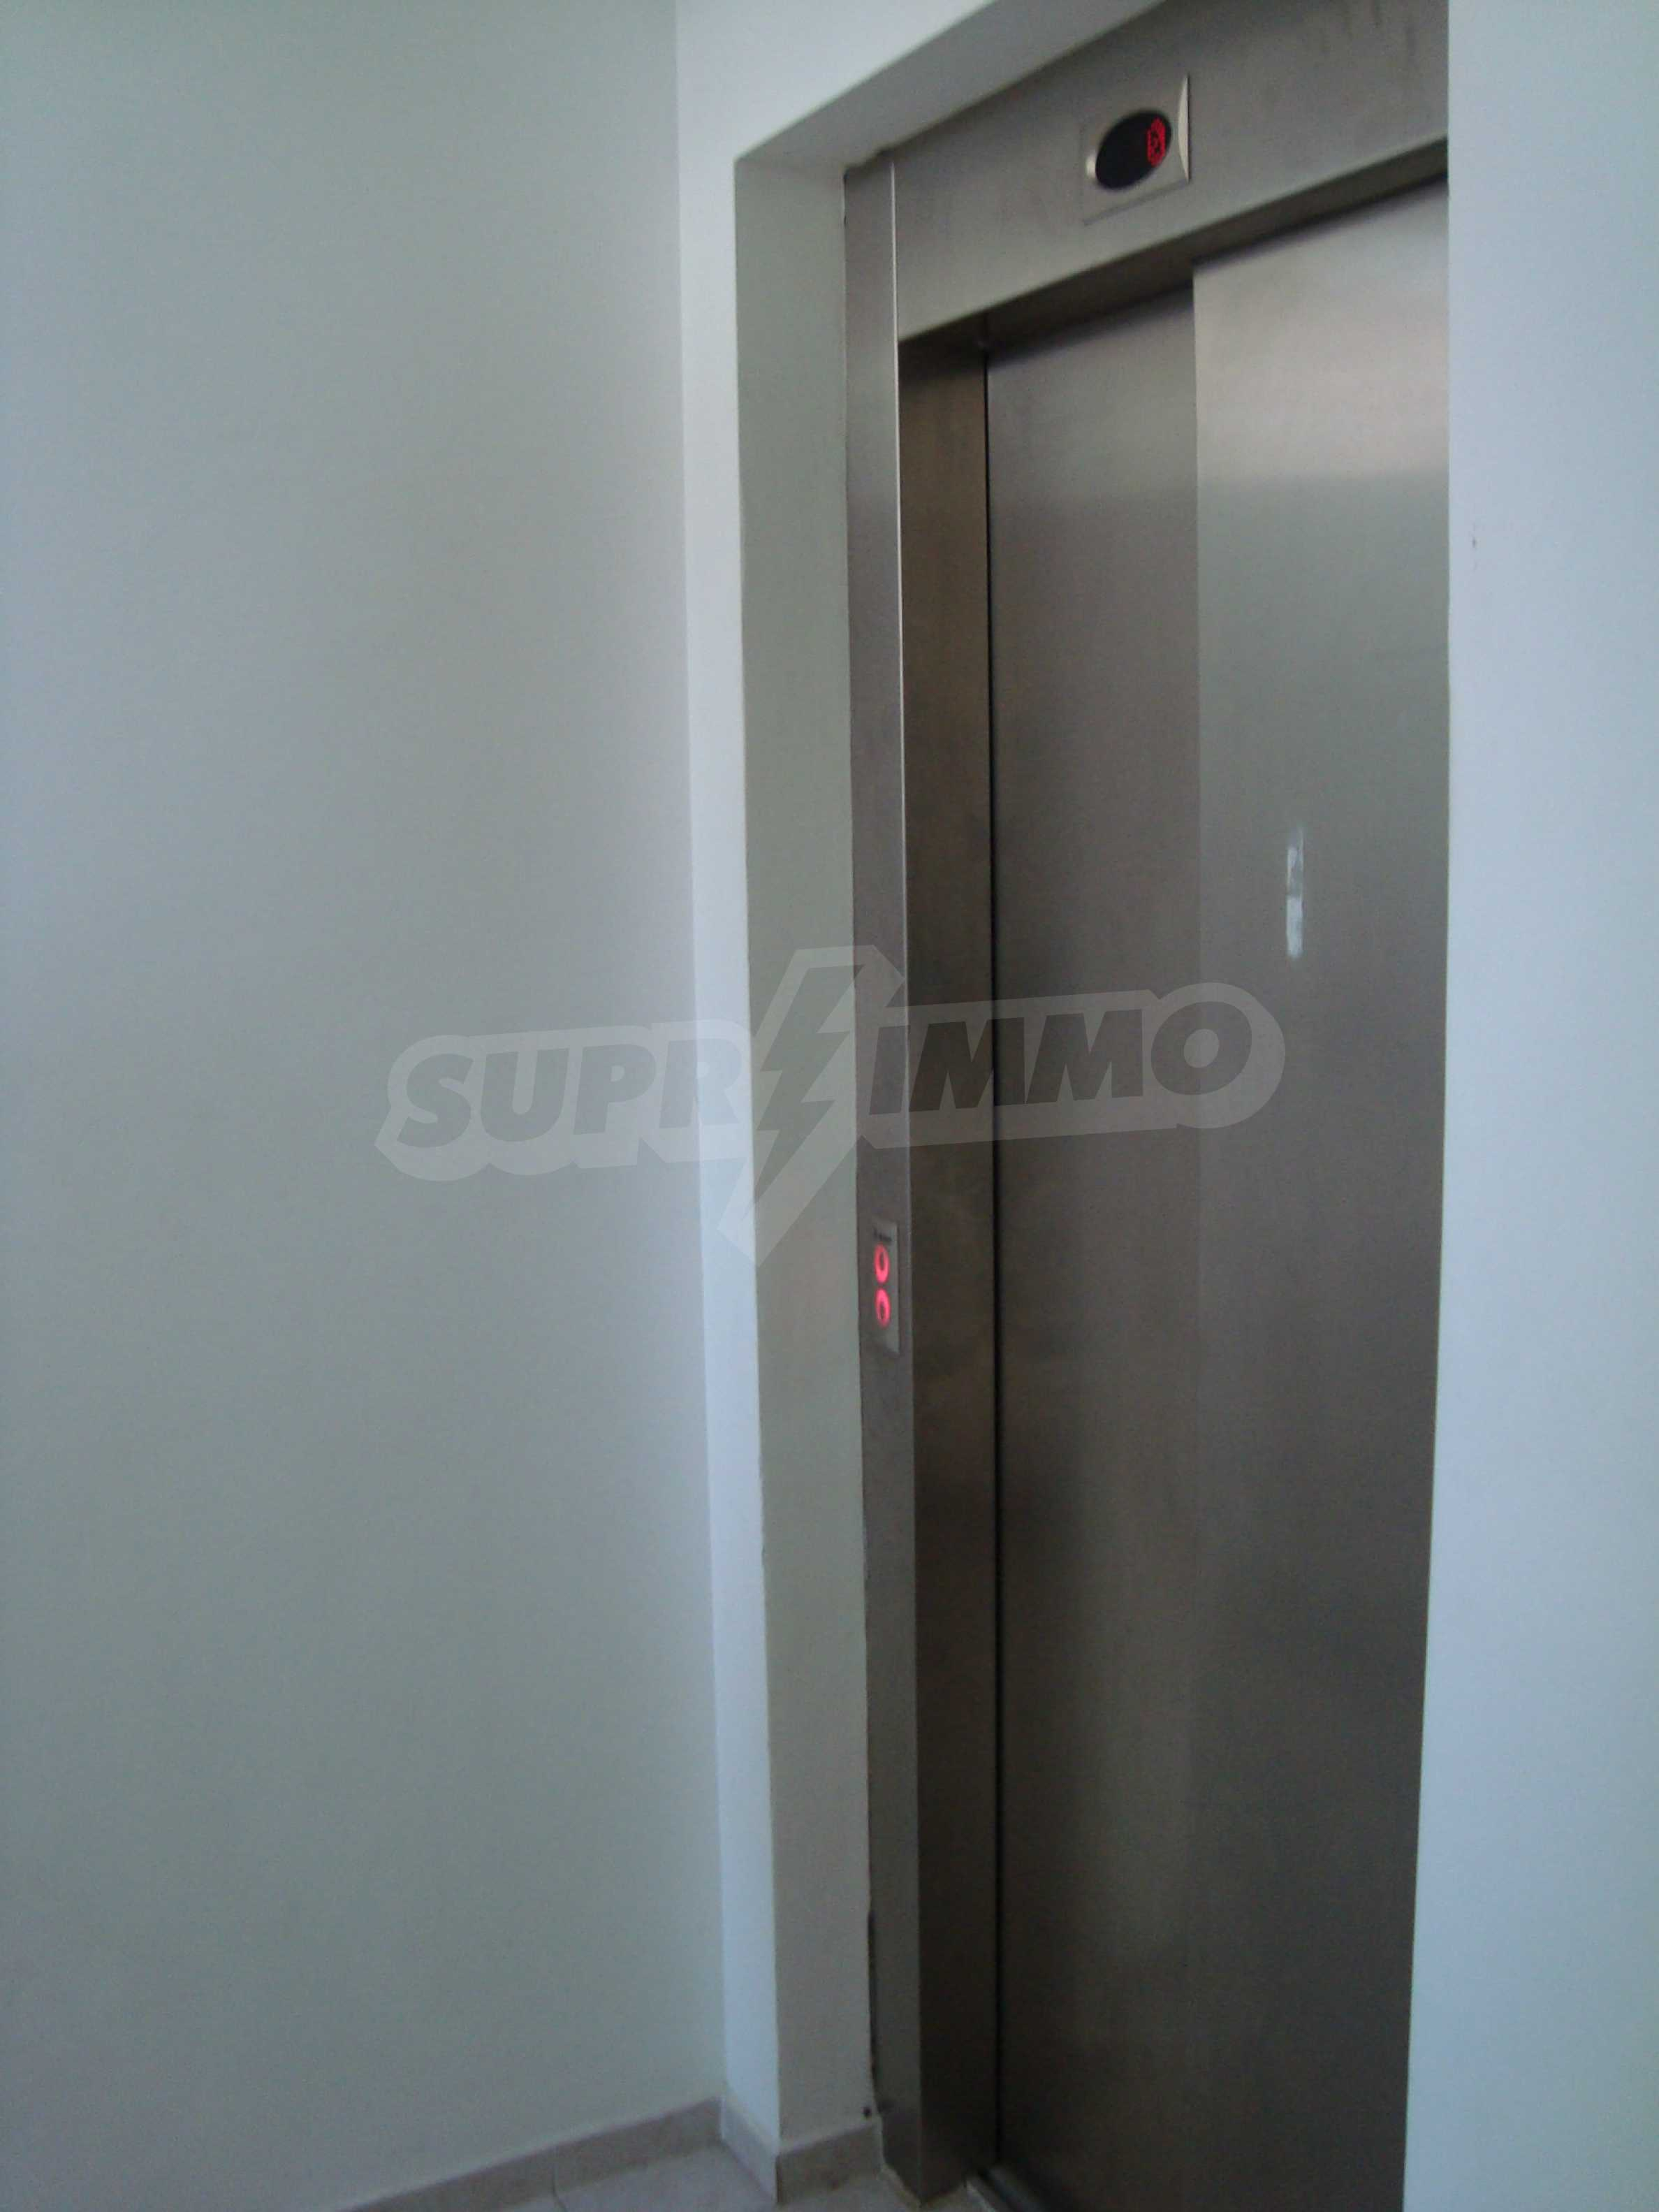 One-bedroom apartment in Prestige City 1 complex in Sunny beach 20